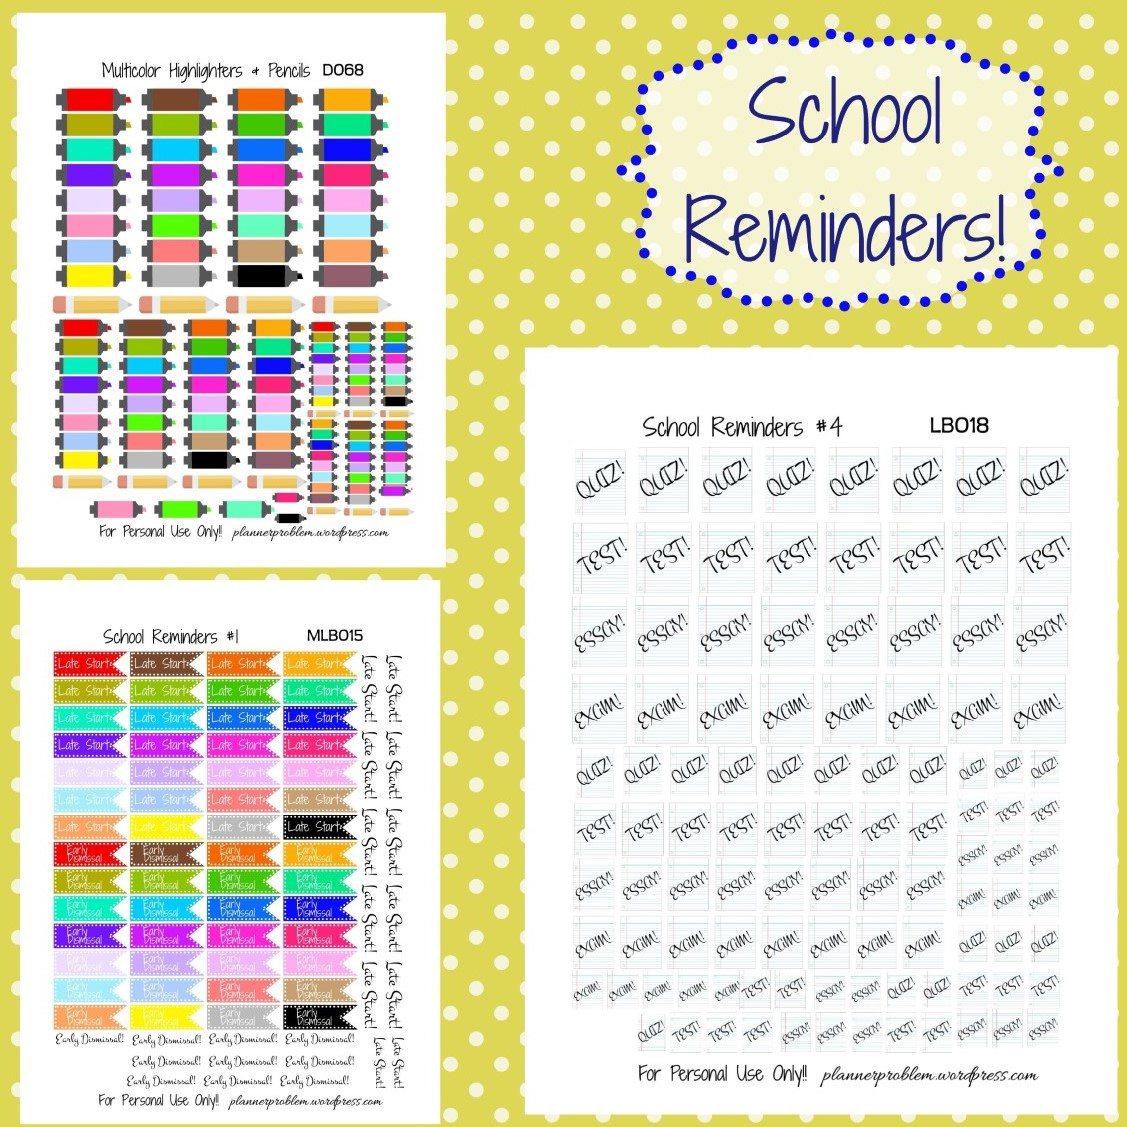 Printable Planner Stickers Student School Reminders Free Printable Planner Stickers